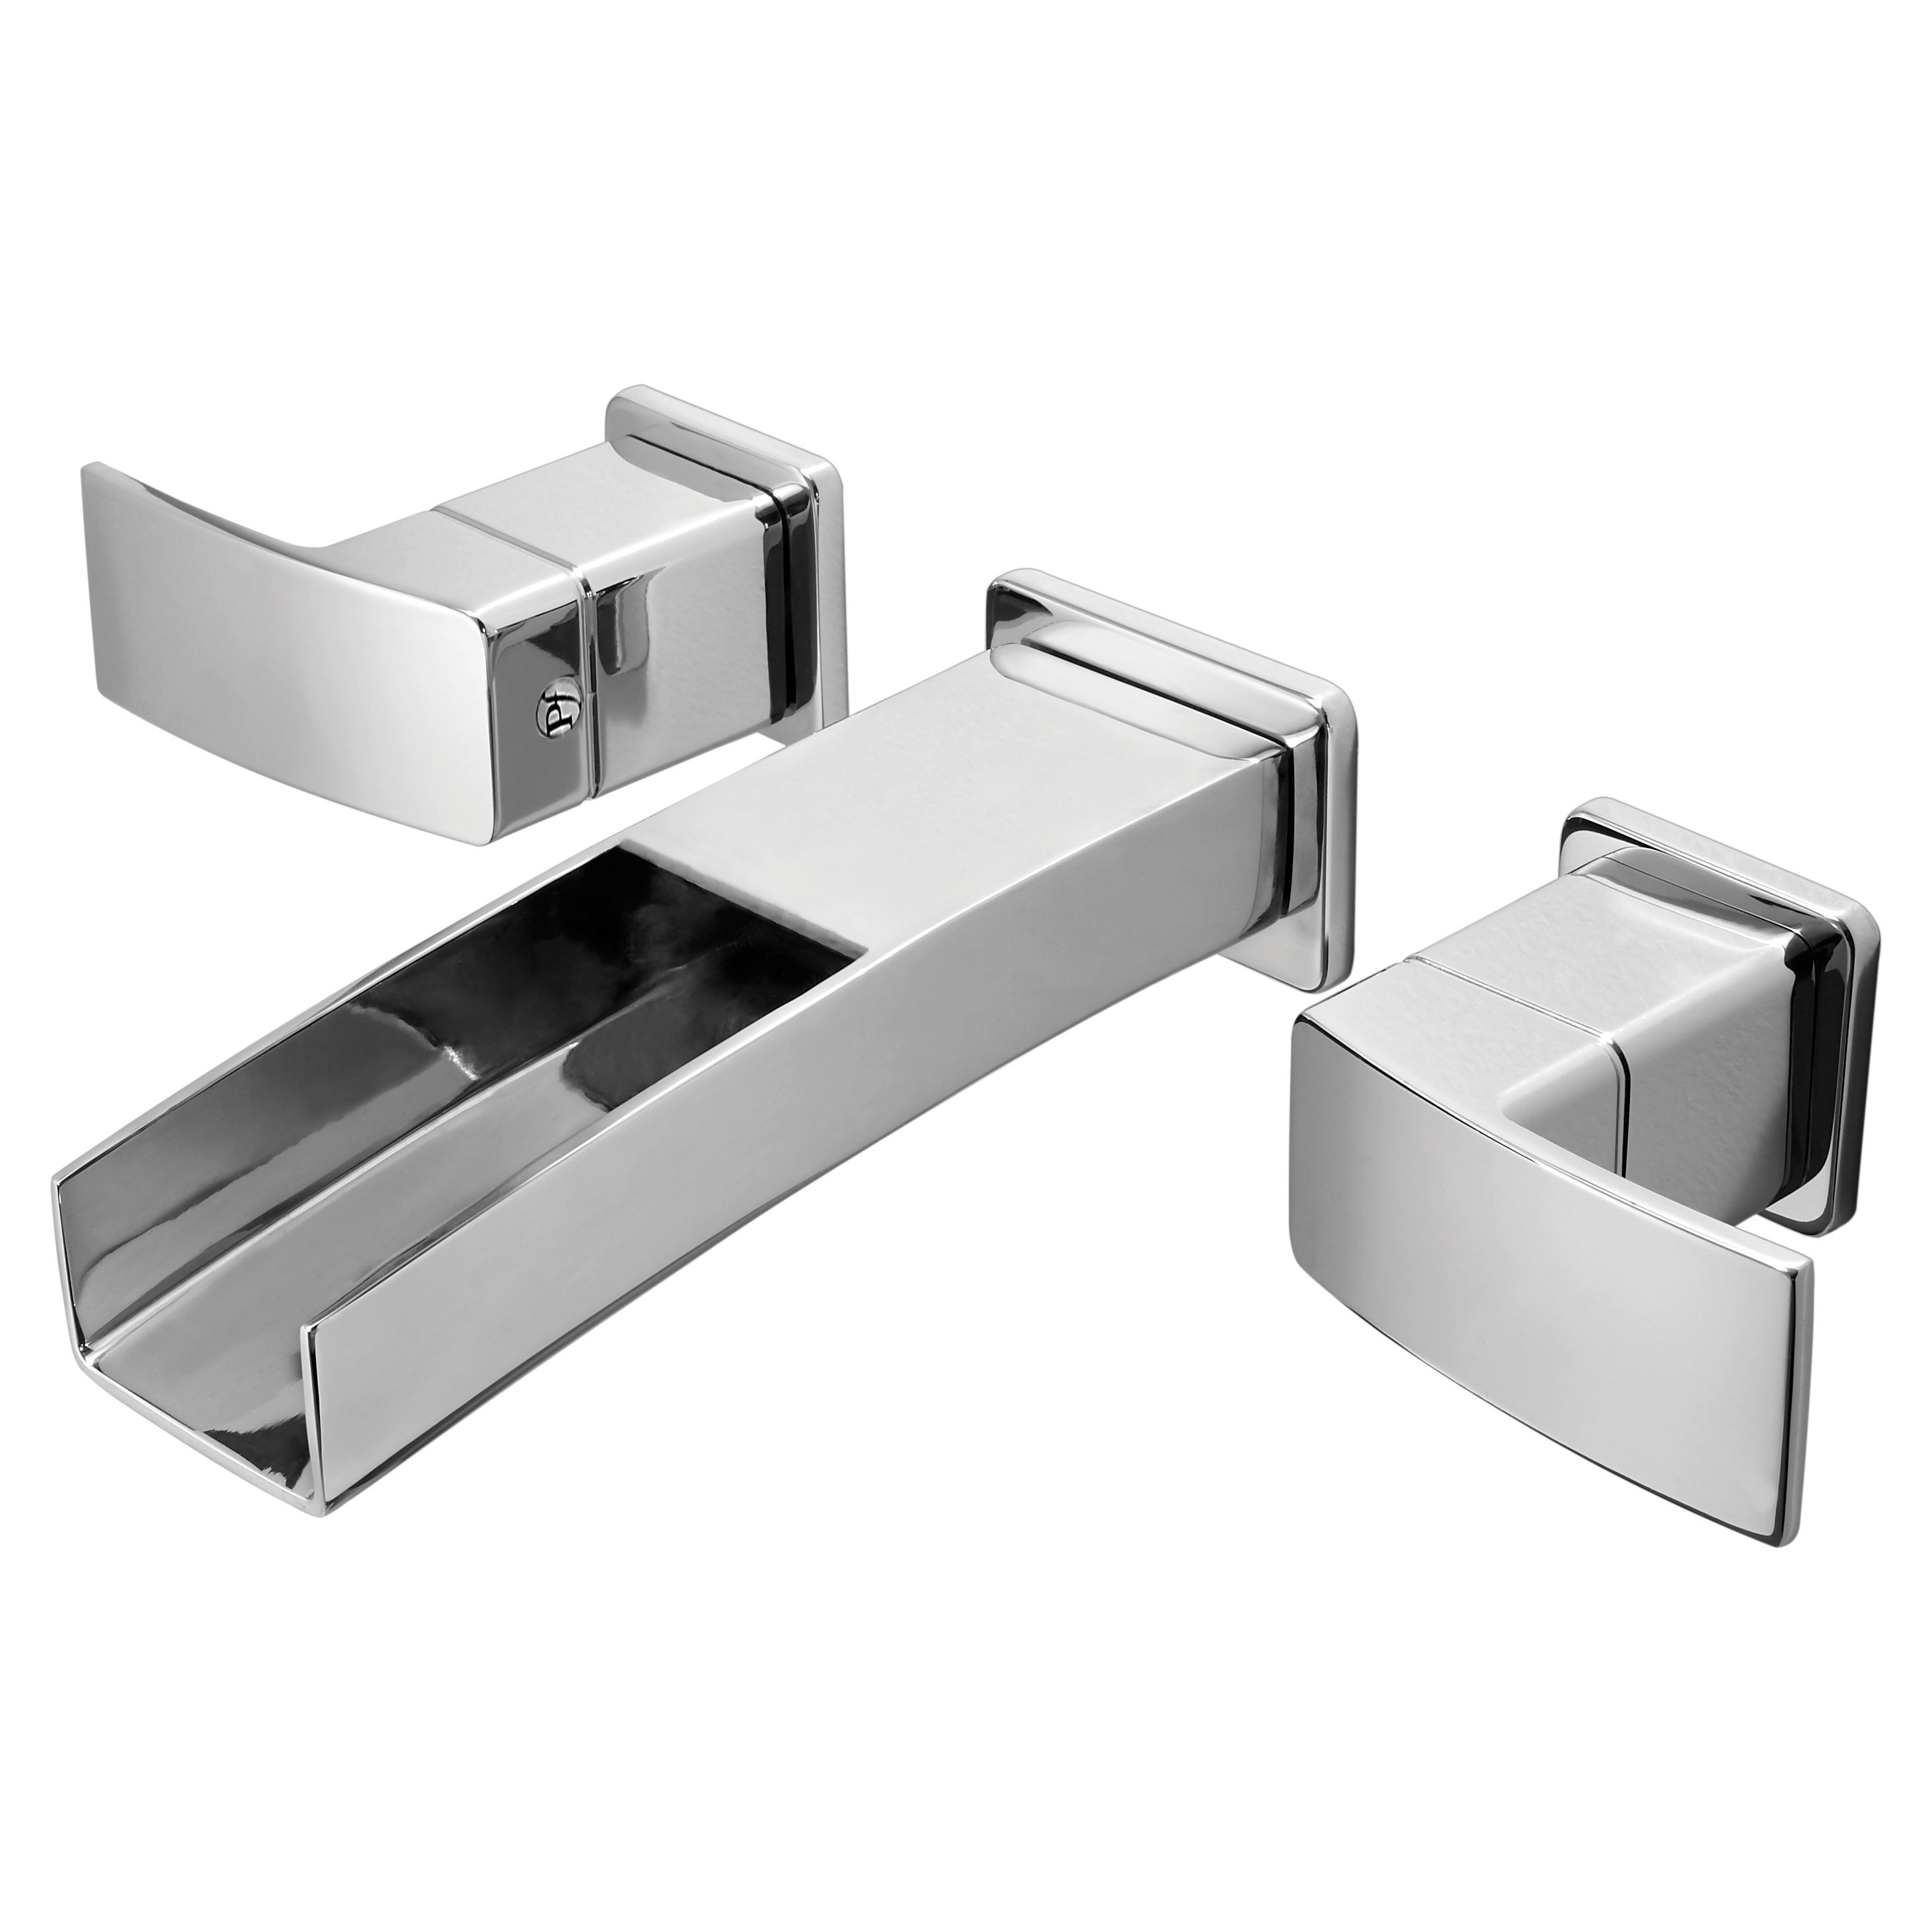 pfister lg49 df1c polished chrome kenzo wall mounted bathroom faucet less valve faucetcom - Pfister Bathroom Faucet